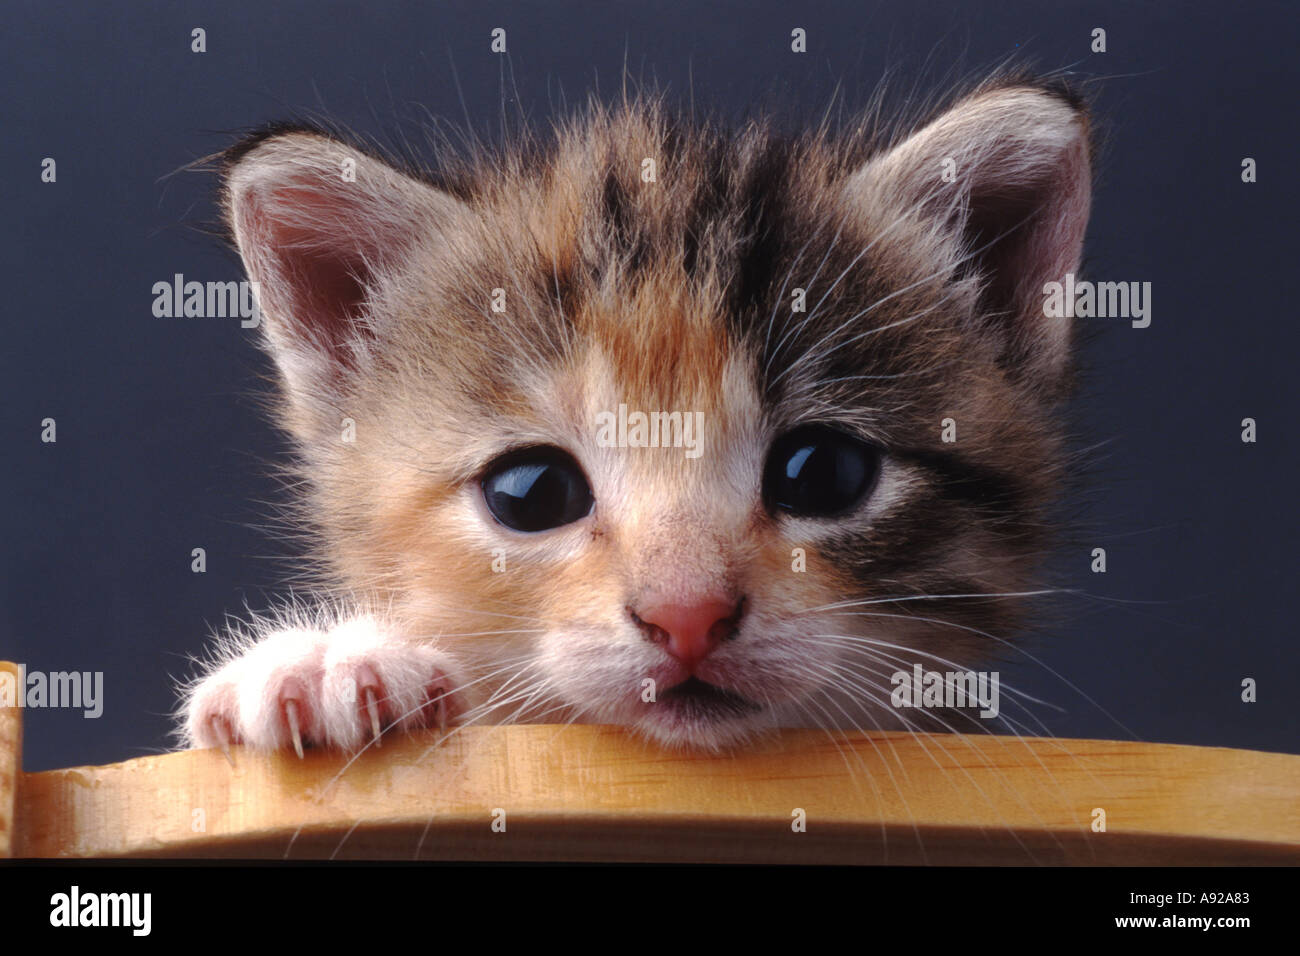 baby animal cat kitten kitty cats kittens outdoor animal domestic pet zoology gentle soft fluffy little sweet playful funny humo - Stock Image